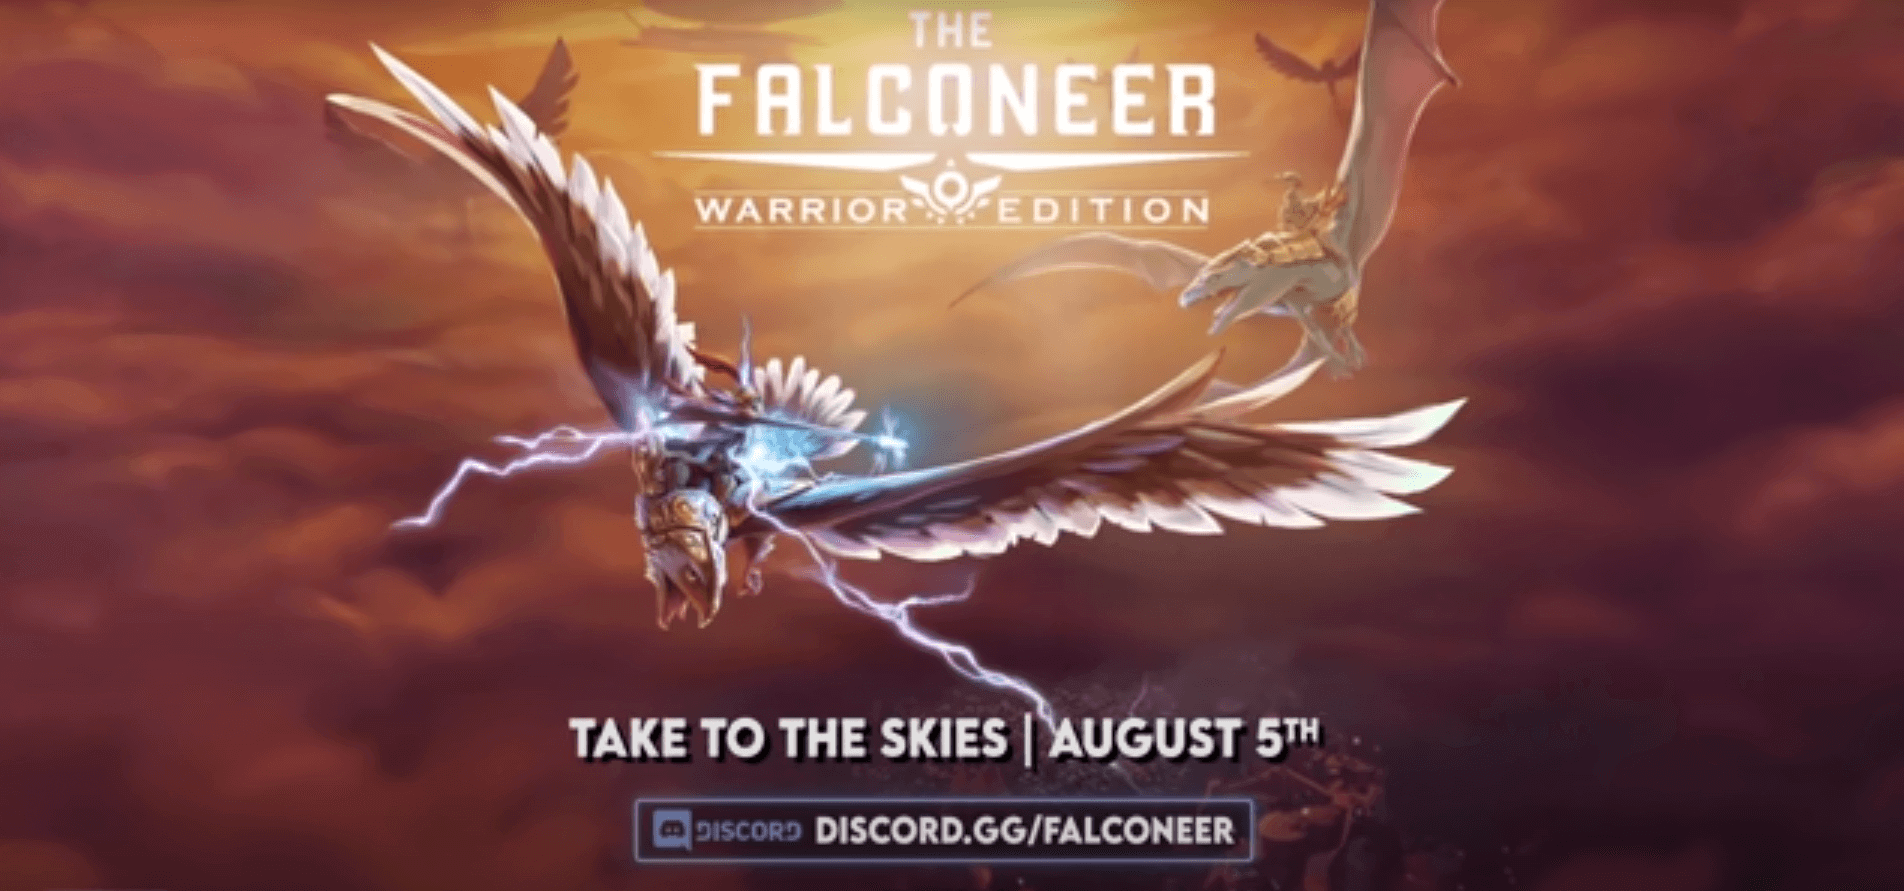 the falconeer warrior edition nintendo switch release date